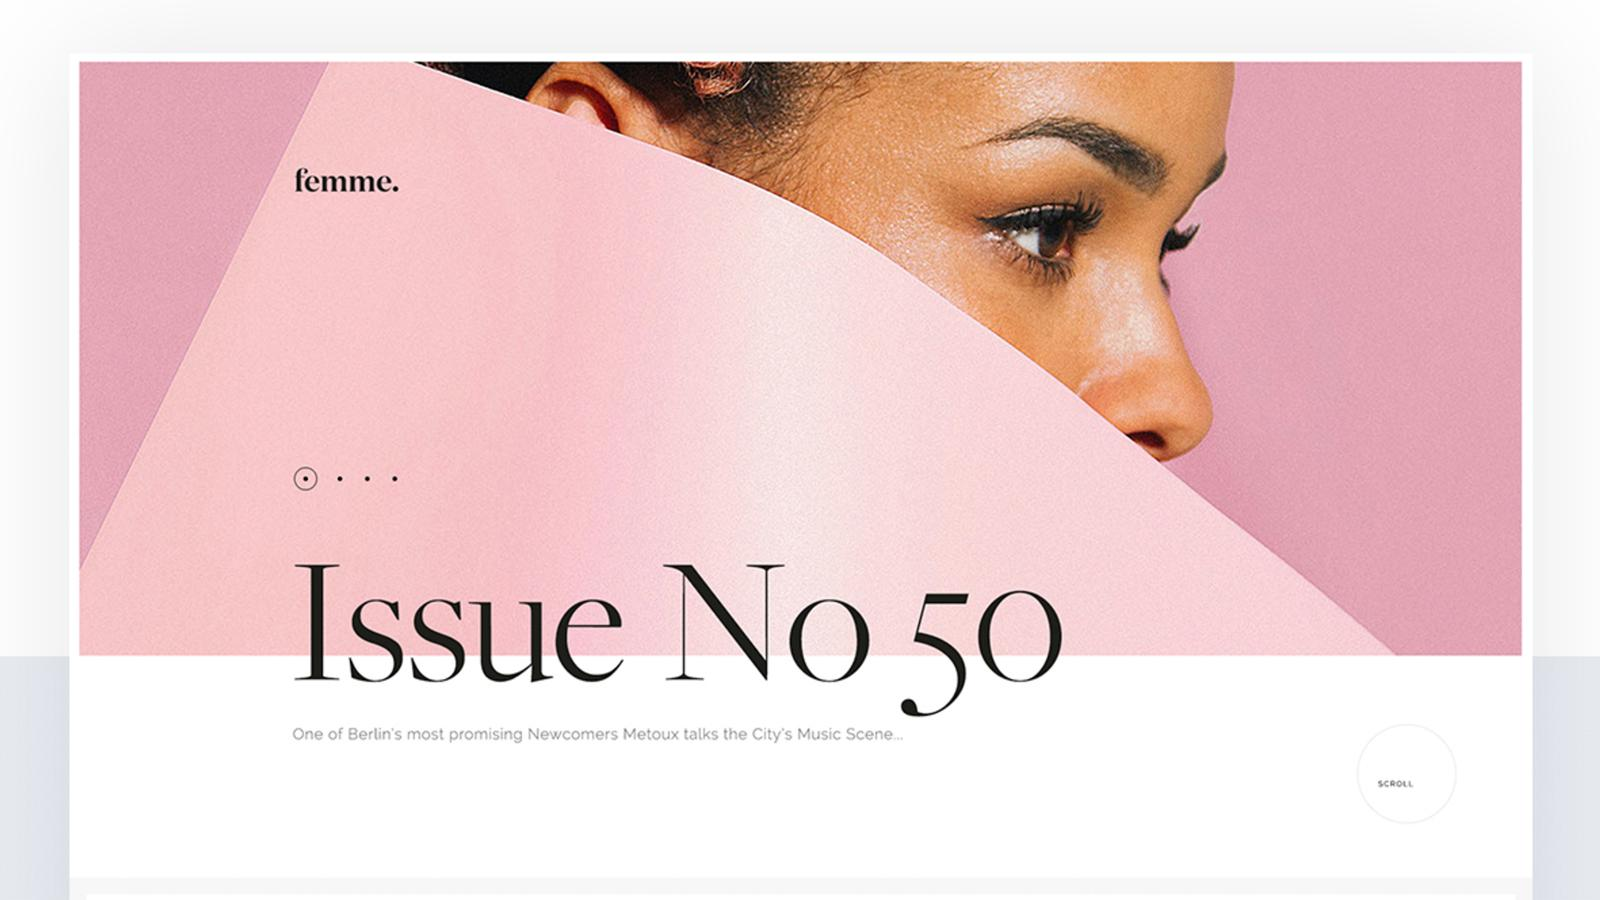 Web Design: Femme Magazine Desktop and Mobile